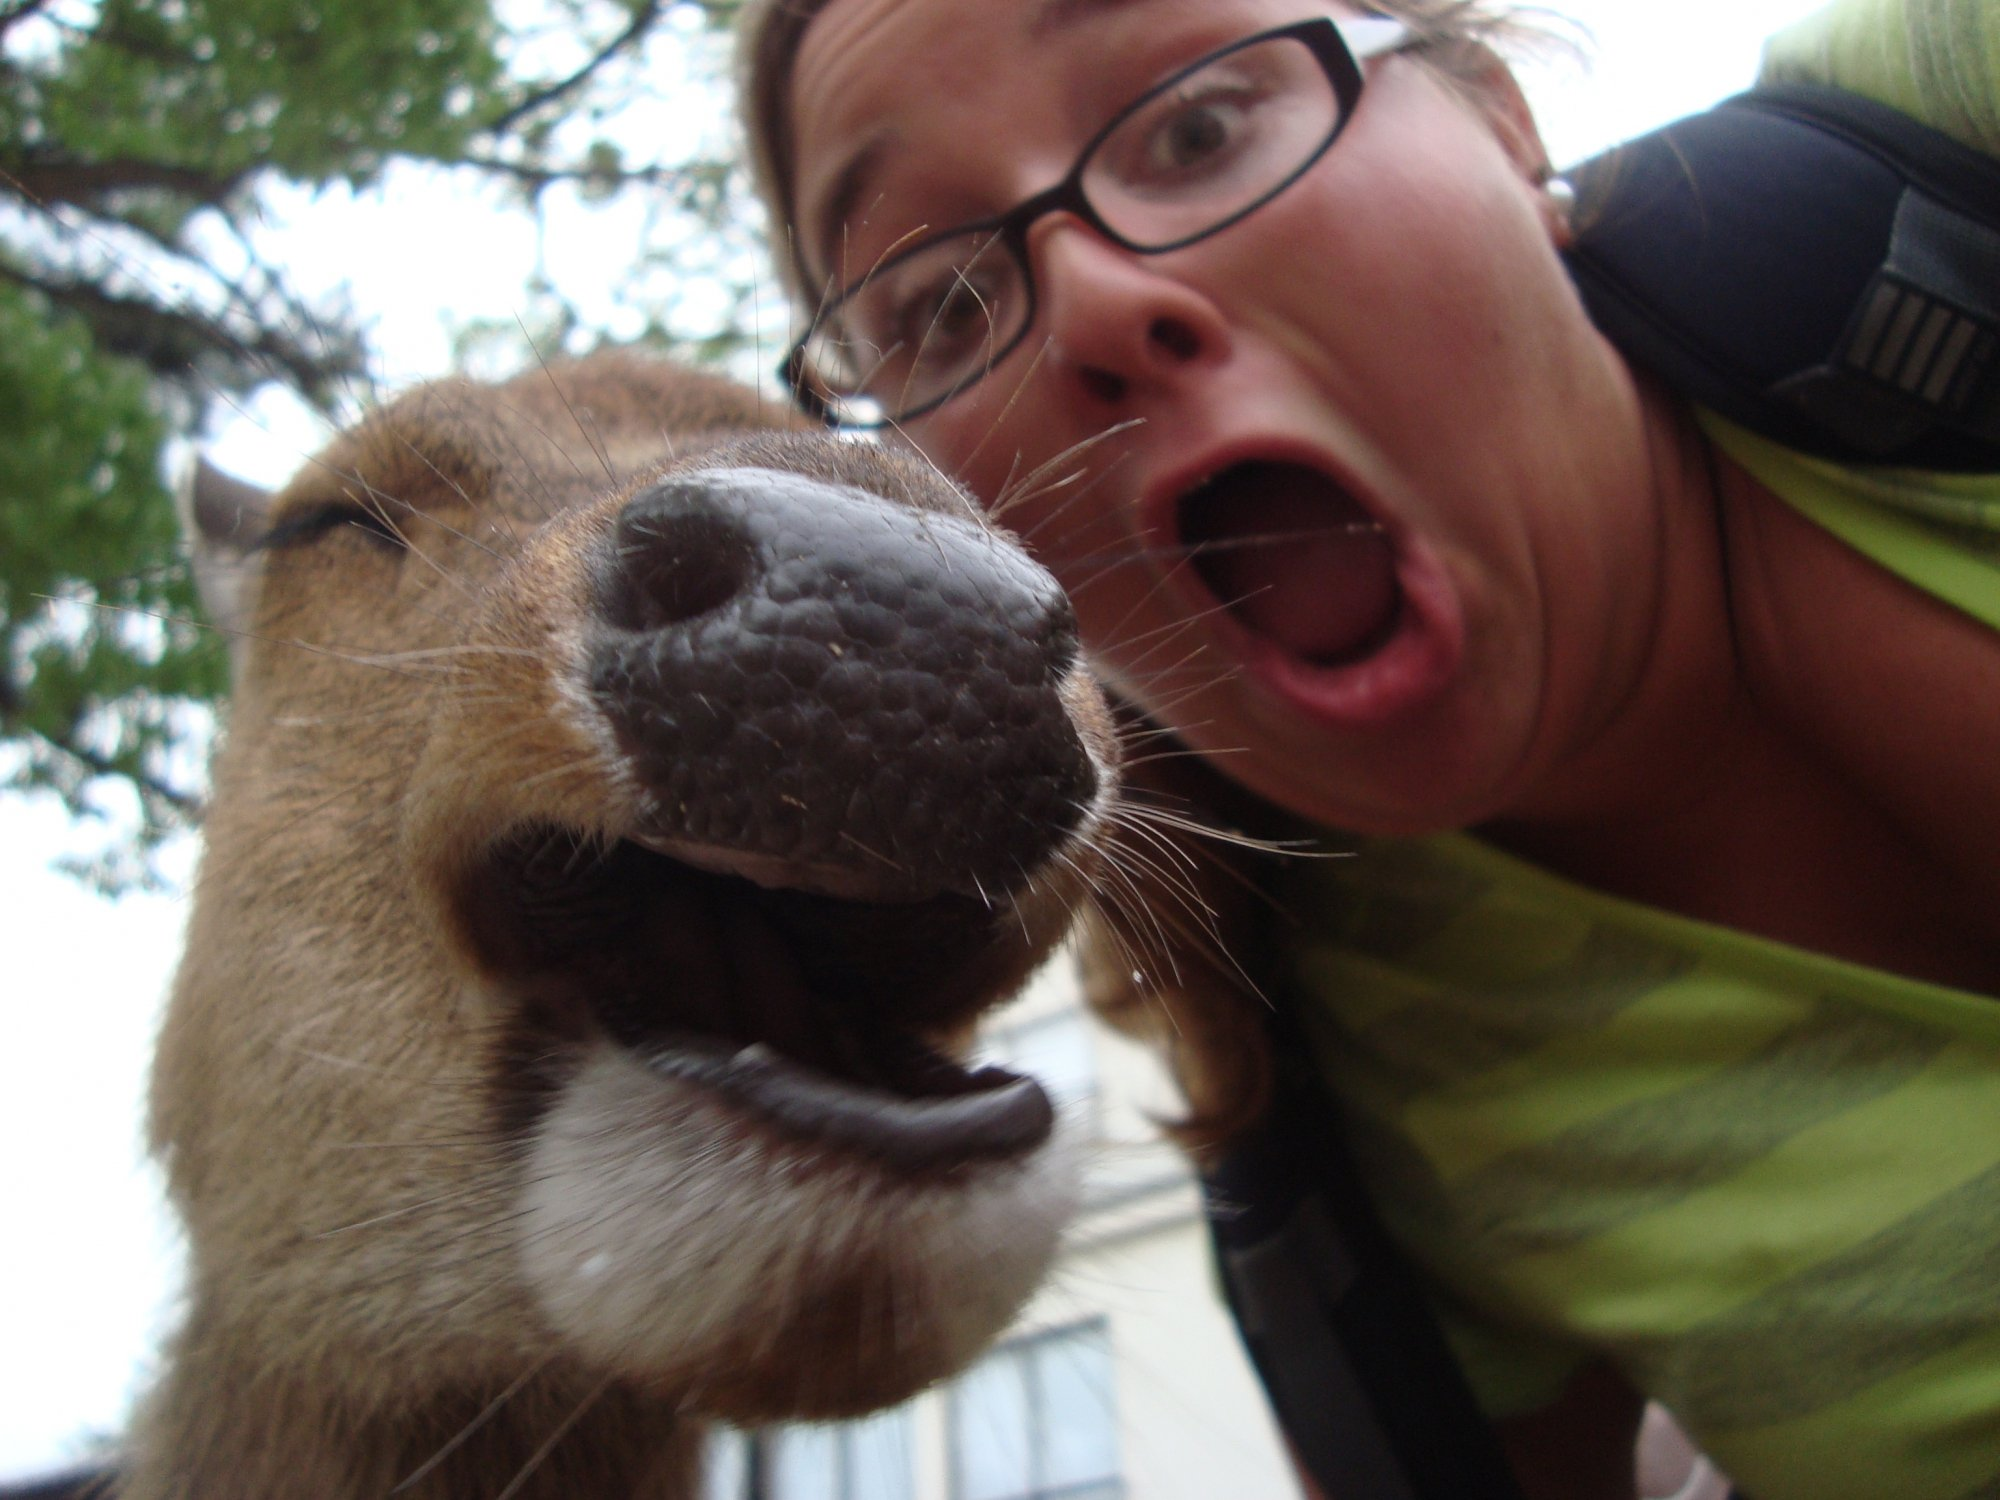 Snapping Selfies with Wild Animals Is a New Trend 3